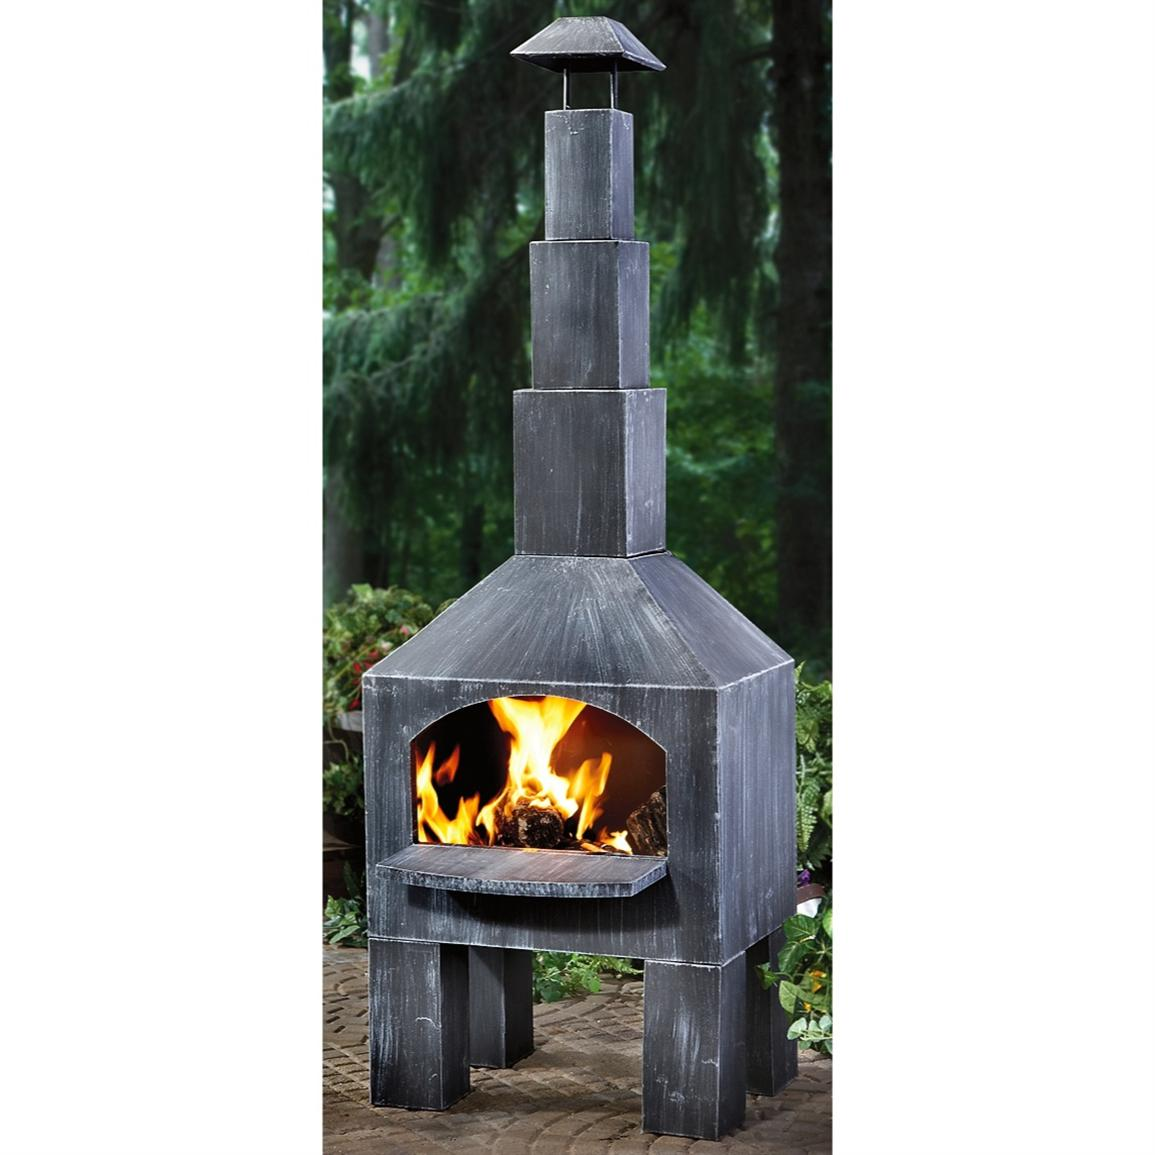 Guide Gear Outdoor Cooking Chiminea 200362 for patio furniture ideas